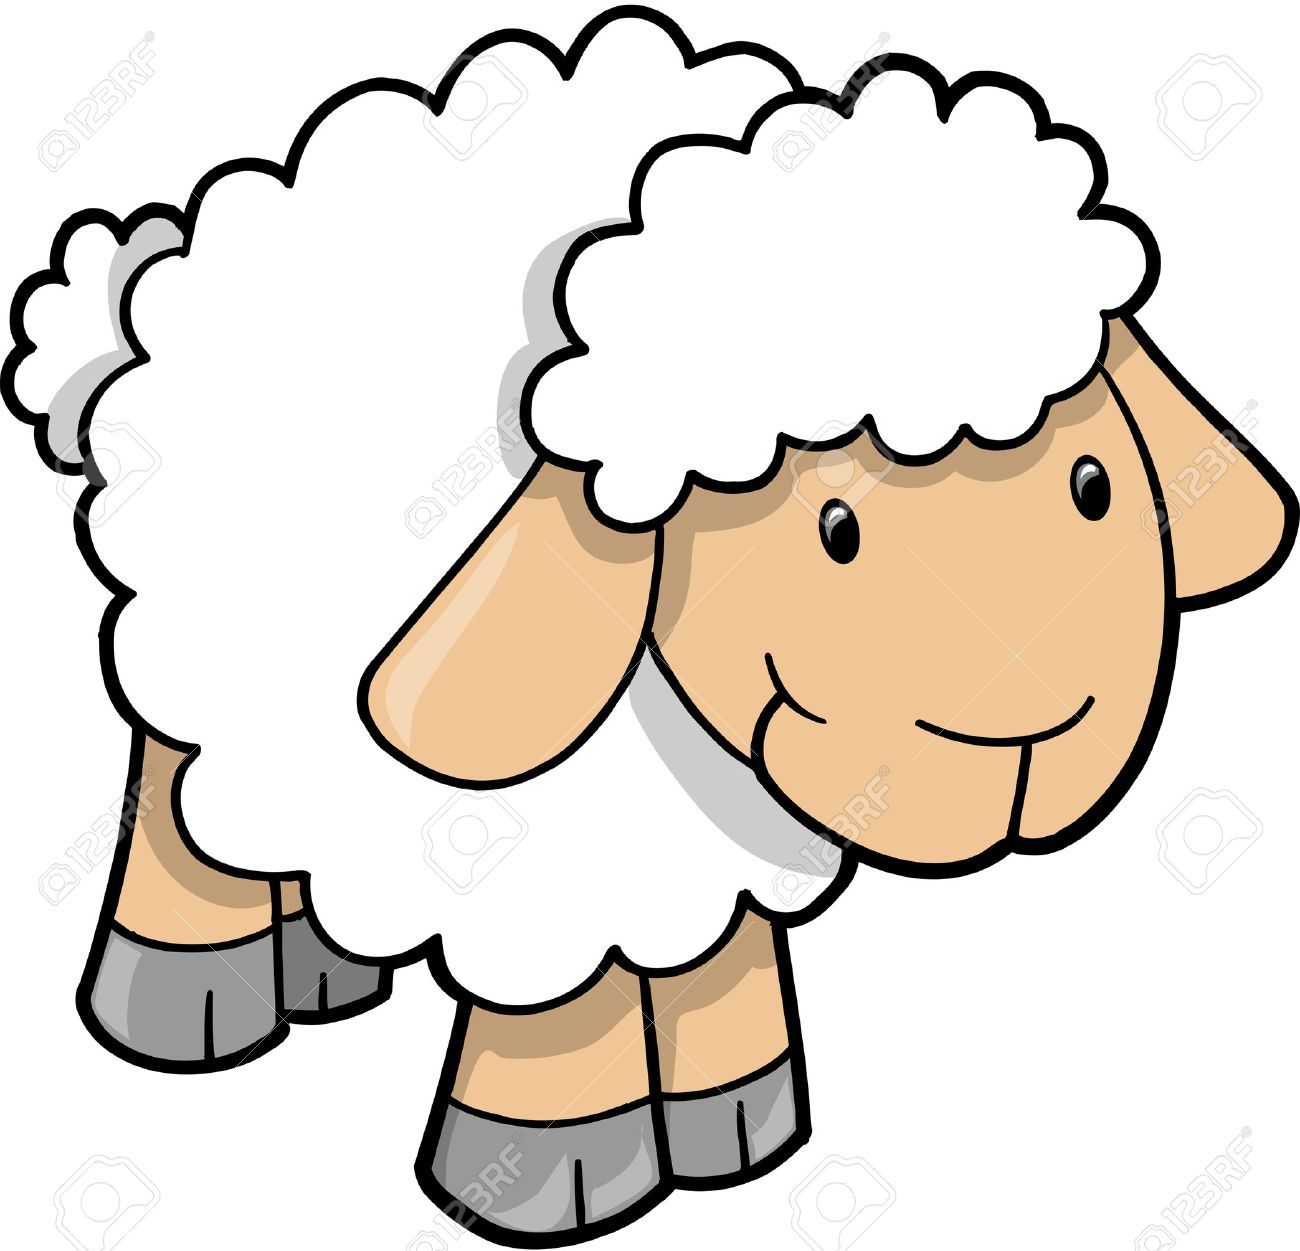 sheep vector illustration royalty free cliparts vectors and stock rh 123rf com sheep vector silhouette sheep vector silhouette